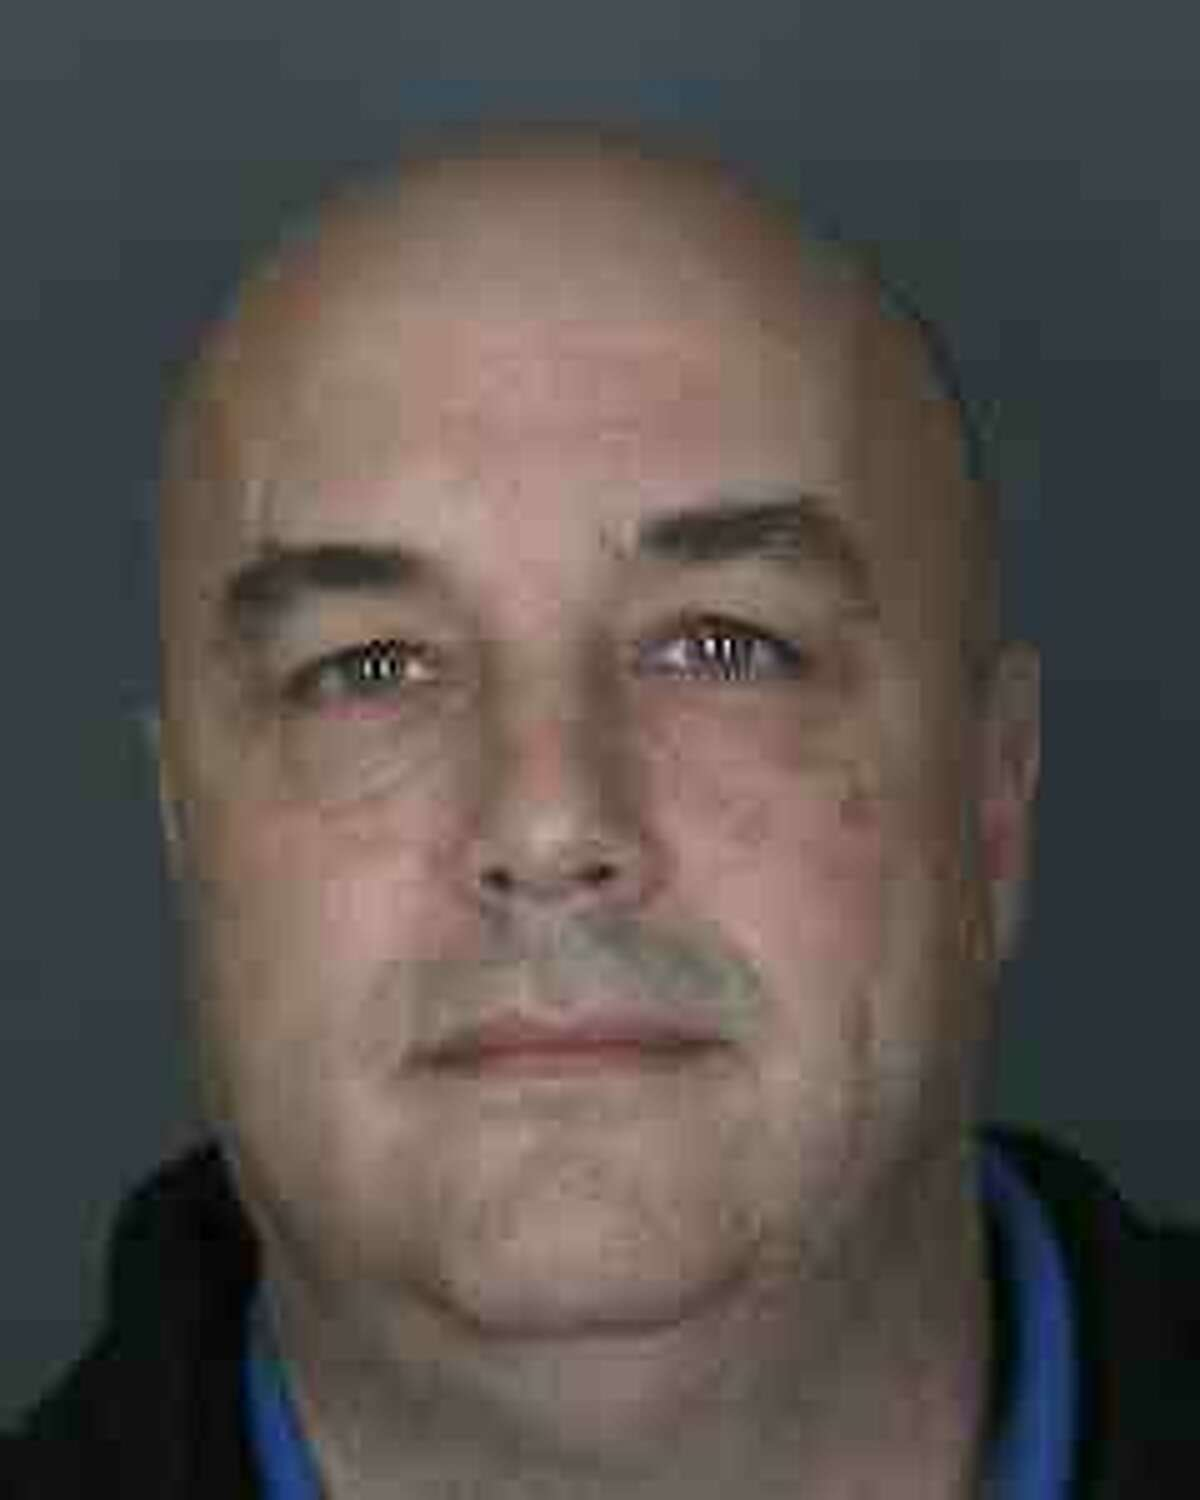 Robert C. Baker, 46, of Selkirk, a social studies teacher at Guilderland Central High School, was arrested and charged with petit larceny. Dec. 21, 2015. (Photo courtesy of Guilderland Police)